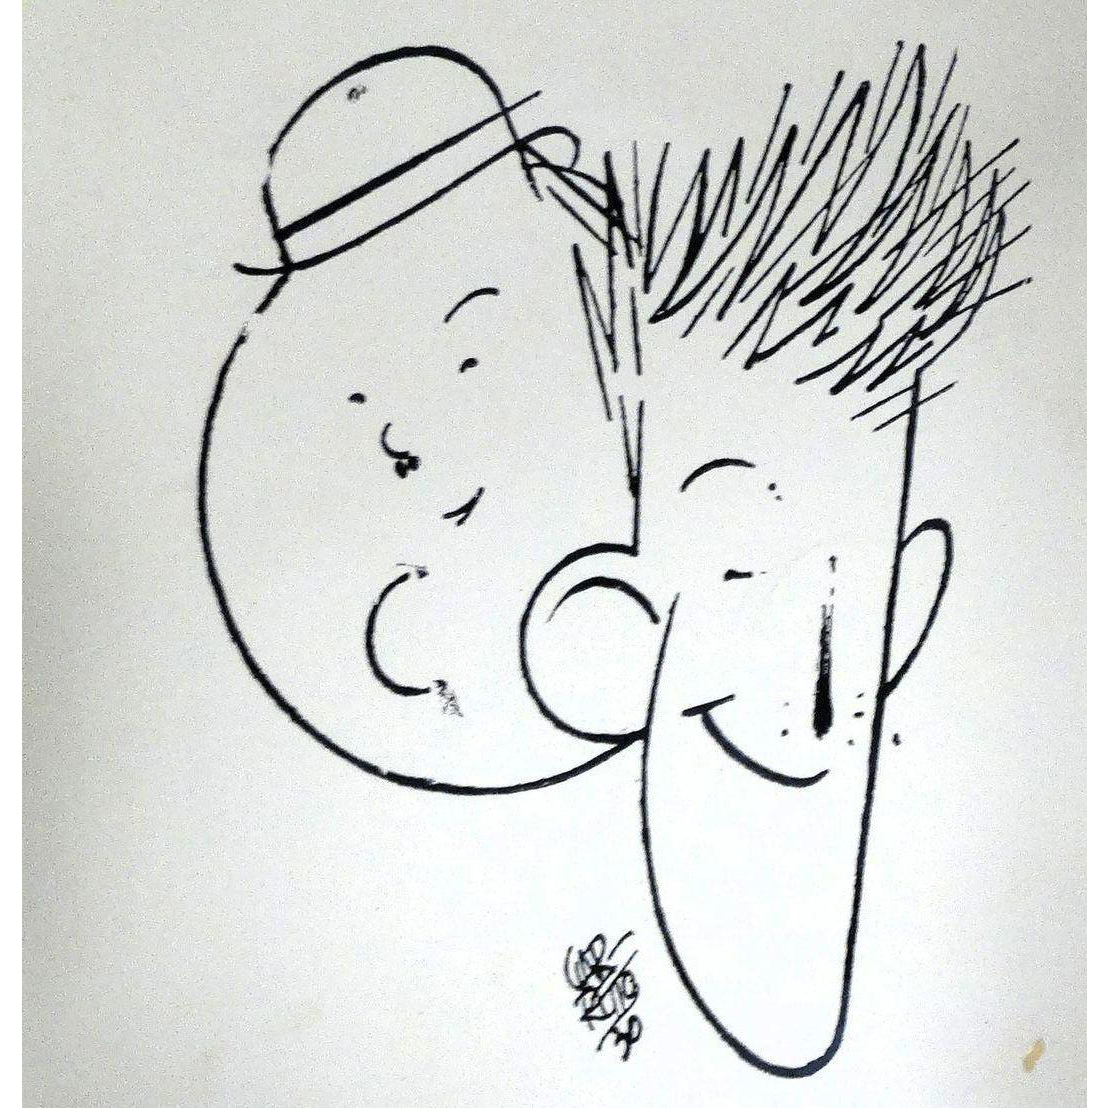 LAUREL and HARDY Caricature Image, by Garretto, 1930, From the Collection of Lois Laurel Hayes, Daughter of Laurel